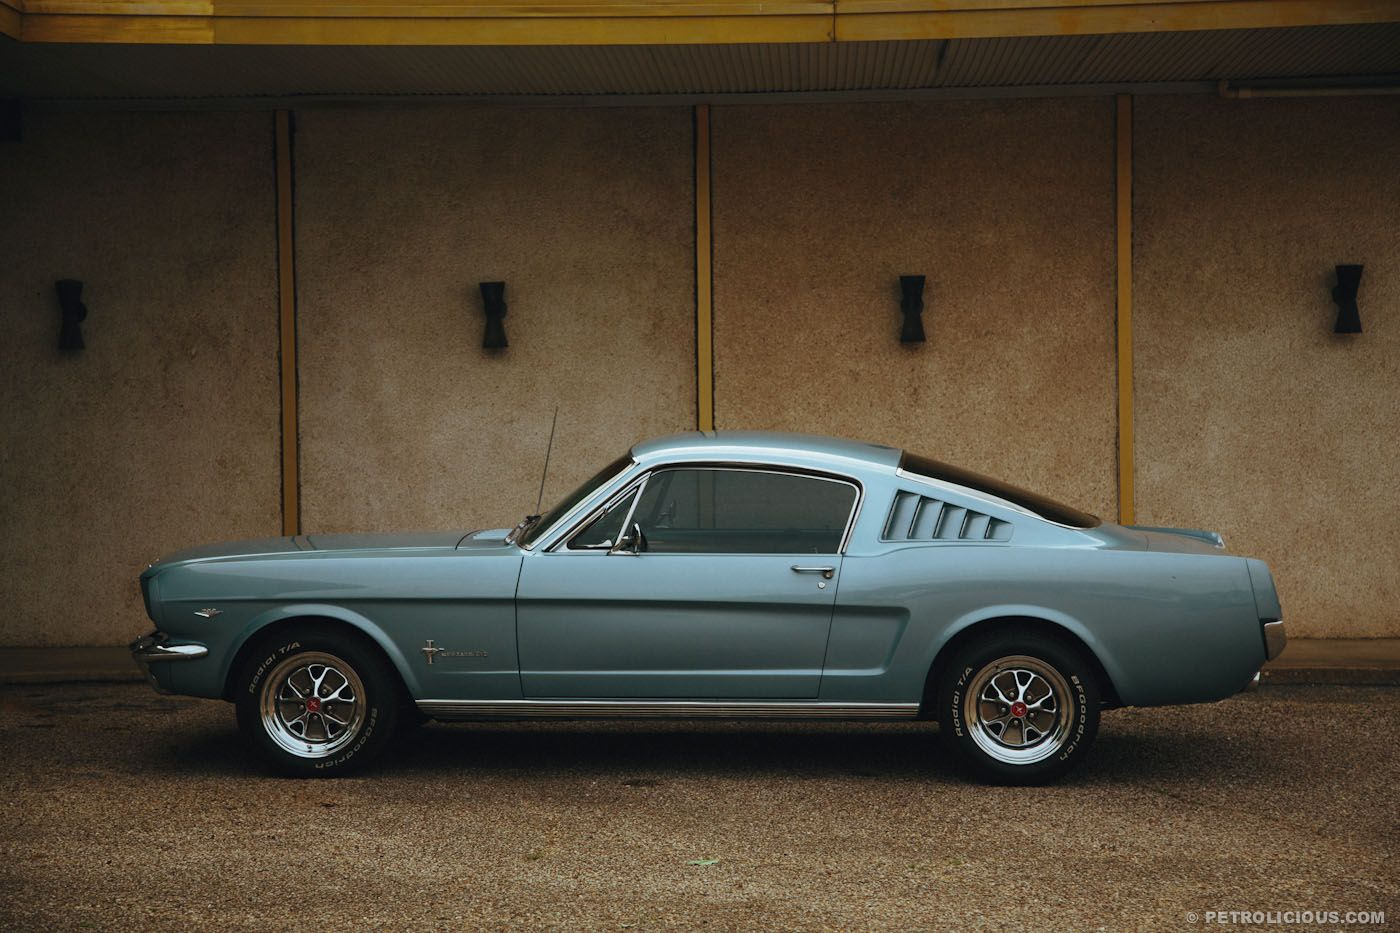 The Ten Best Classic Cars To Drive Daily Mustang Cars And - Sports cars you can daily drive